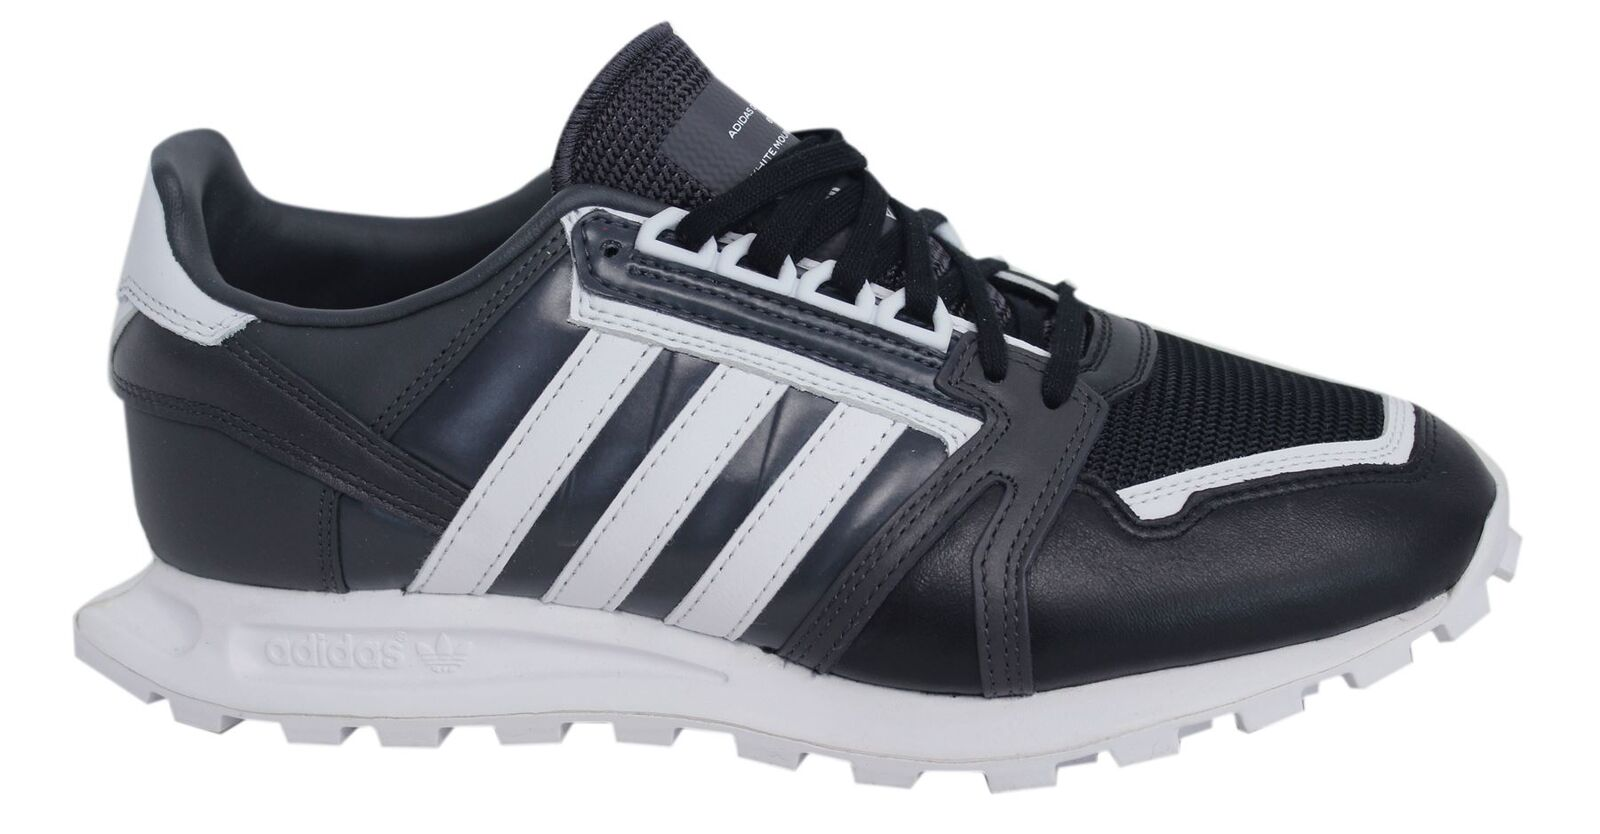 Adidas WM Racing 1 Lace Up Black White Synthetic Mens Trainers S81910 U46